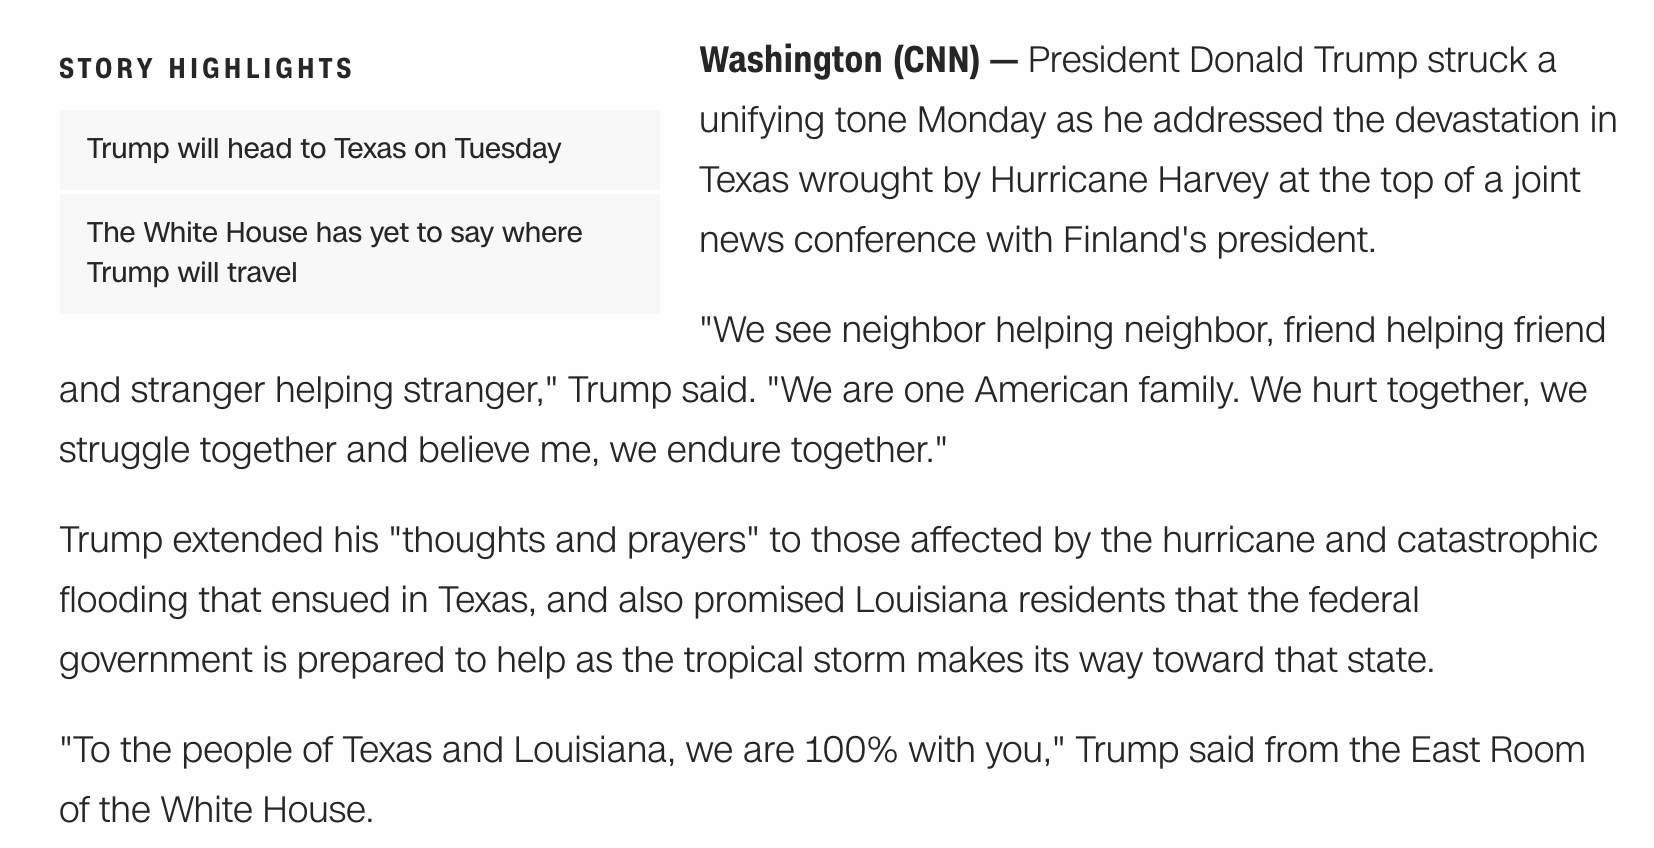 Example of a CNN News Article With Highlights from cnn.com